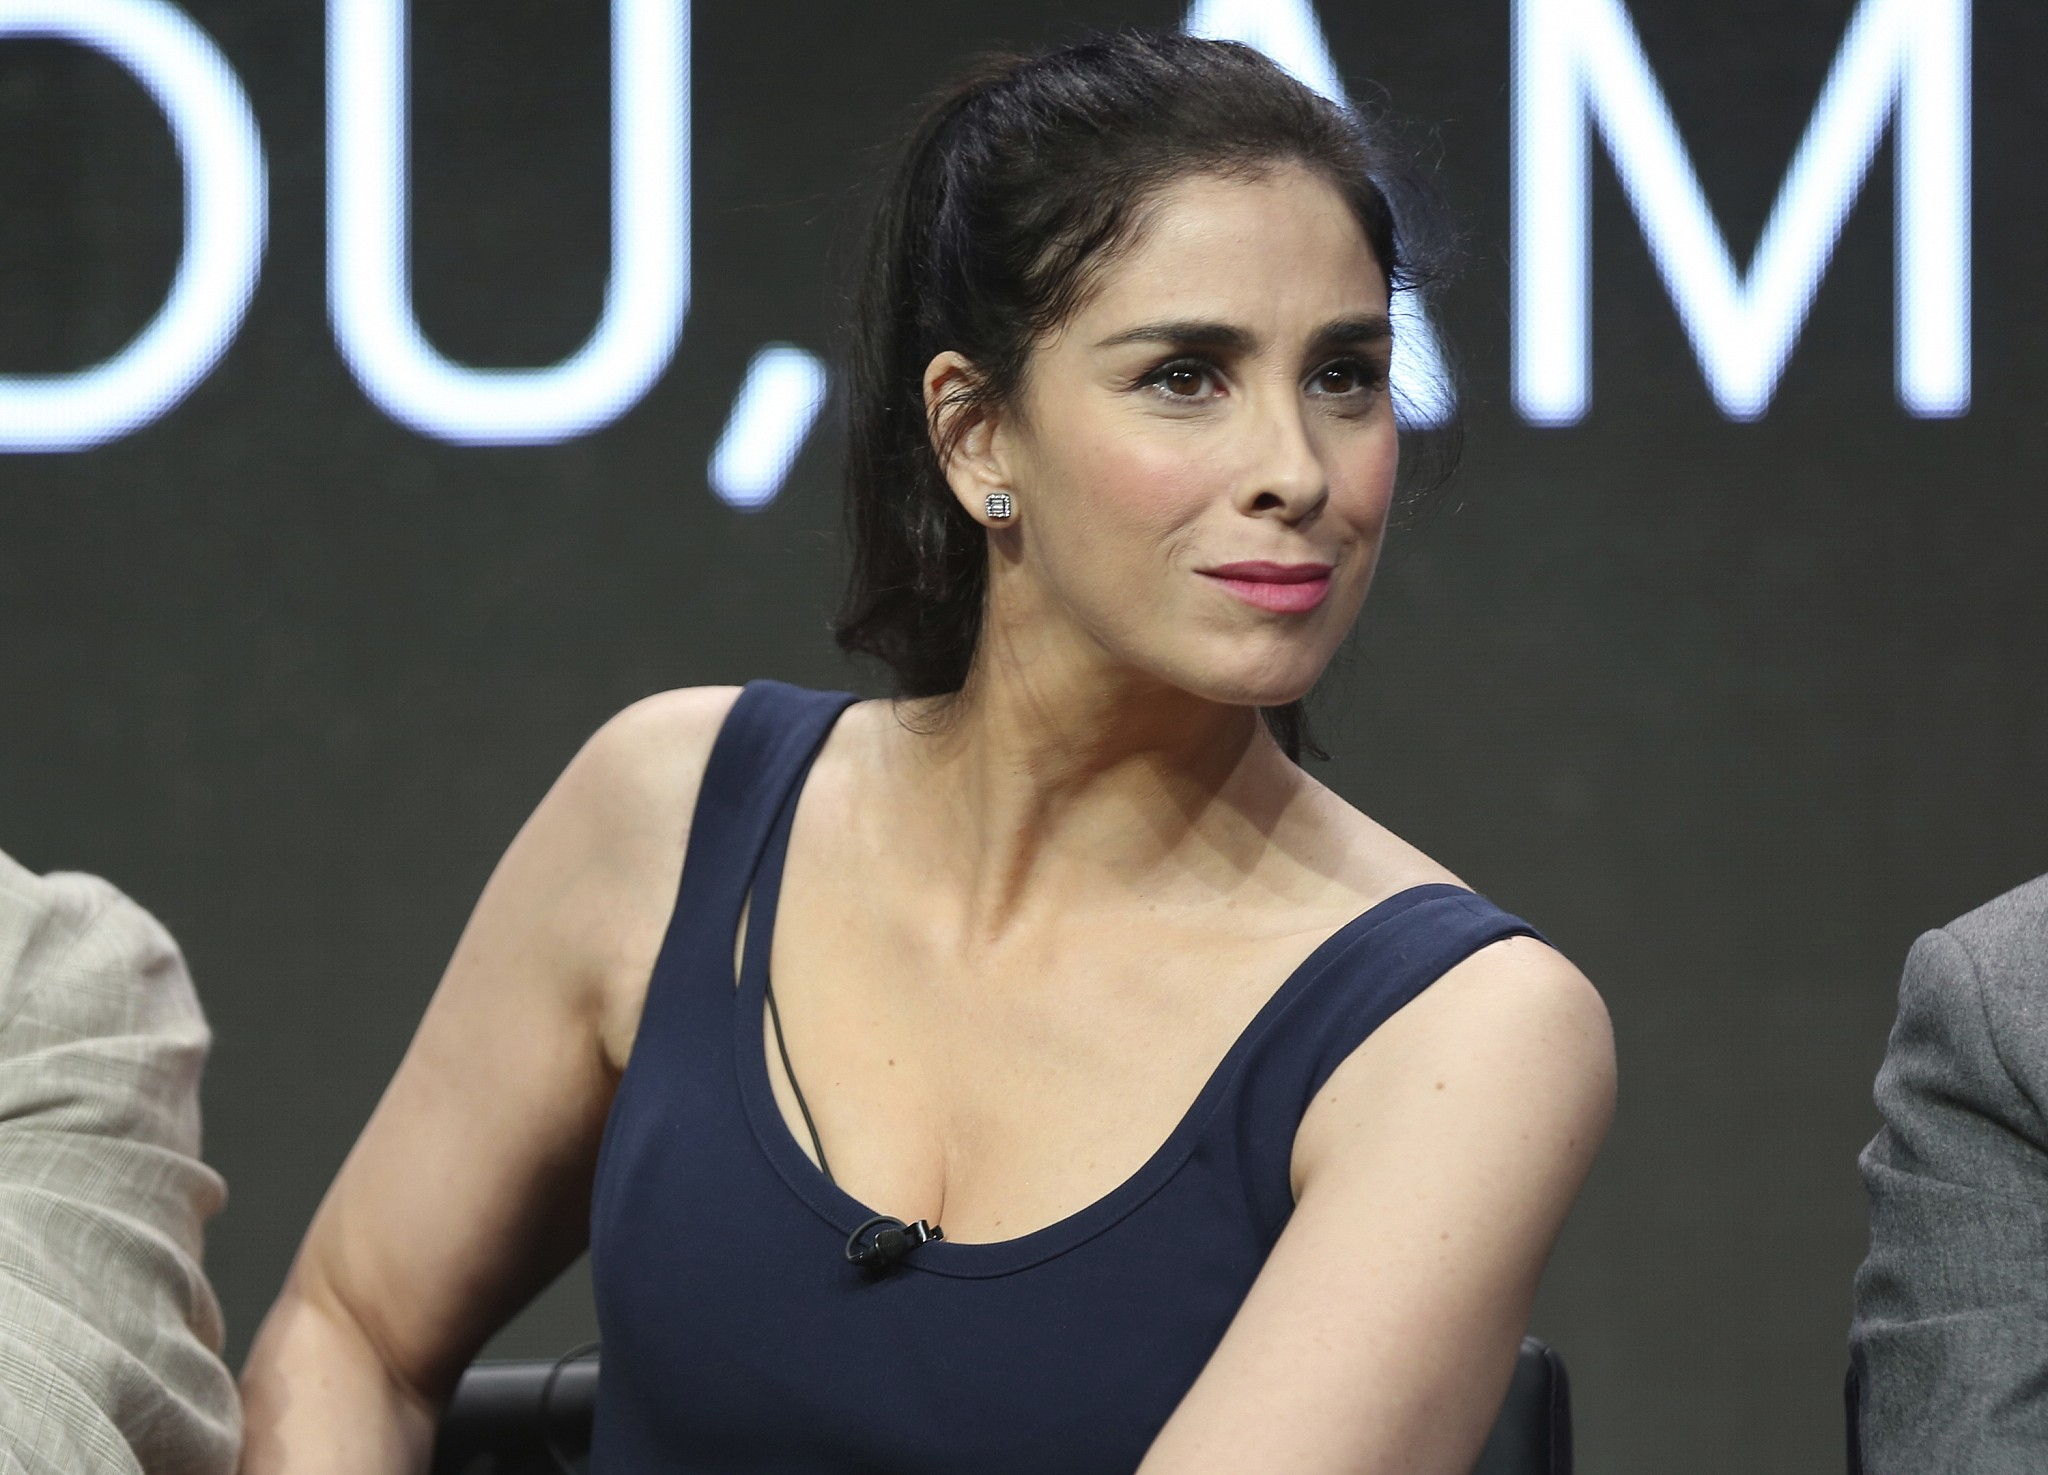 Fotos Sarah Silverman nude photos 2019